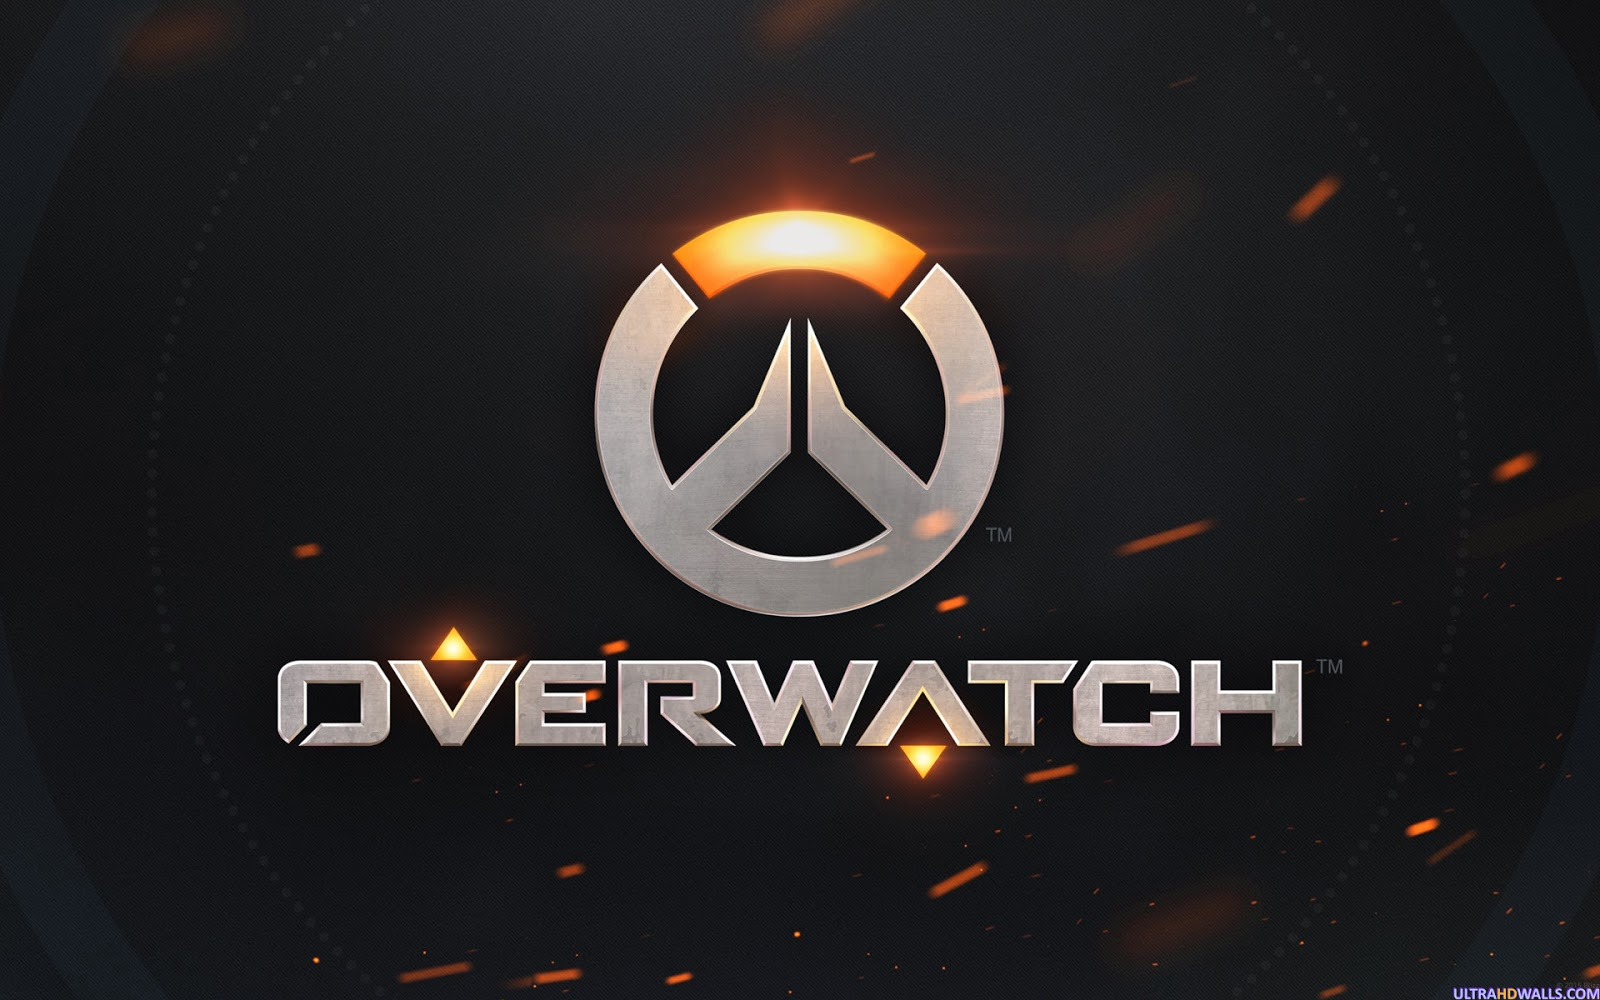 overwatch game hd wallpapers - hd wallpaper jos